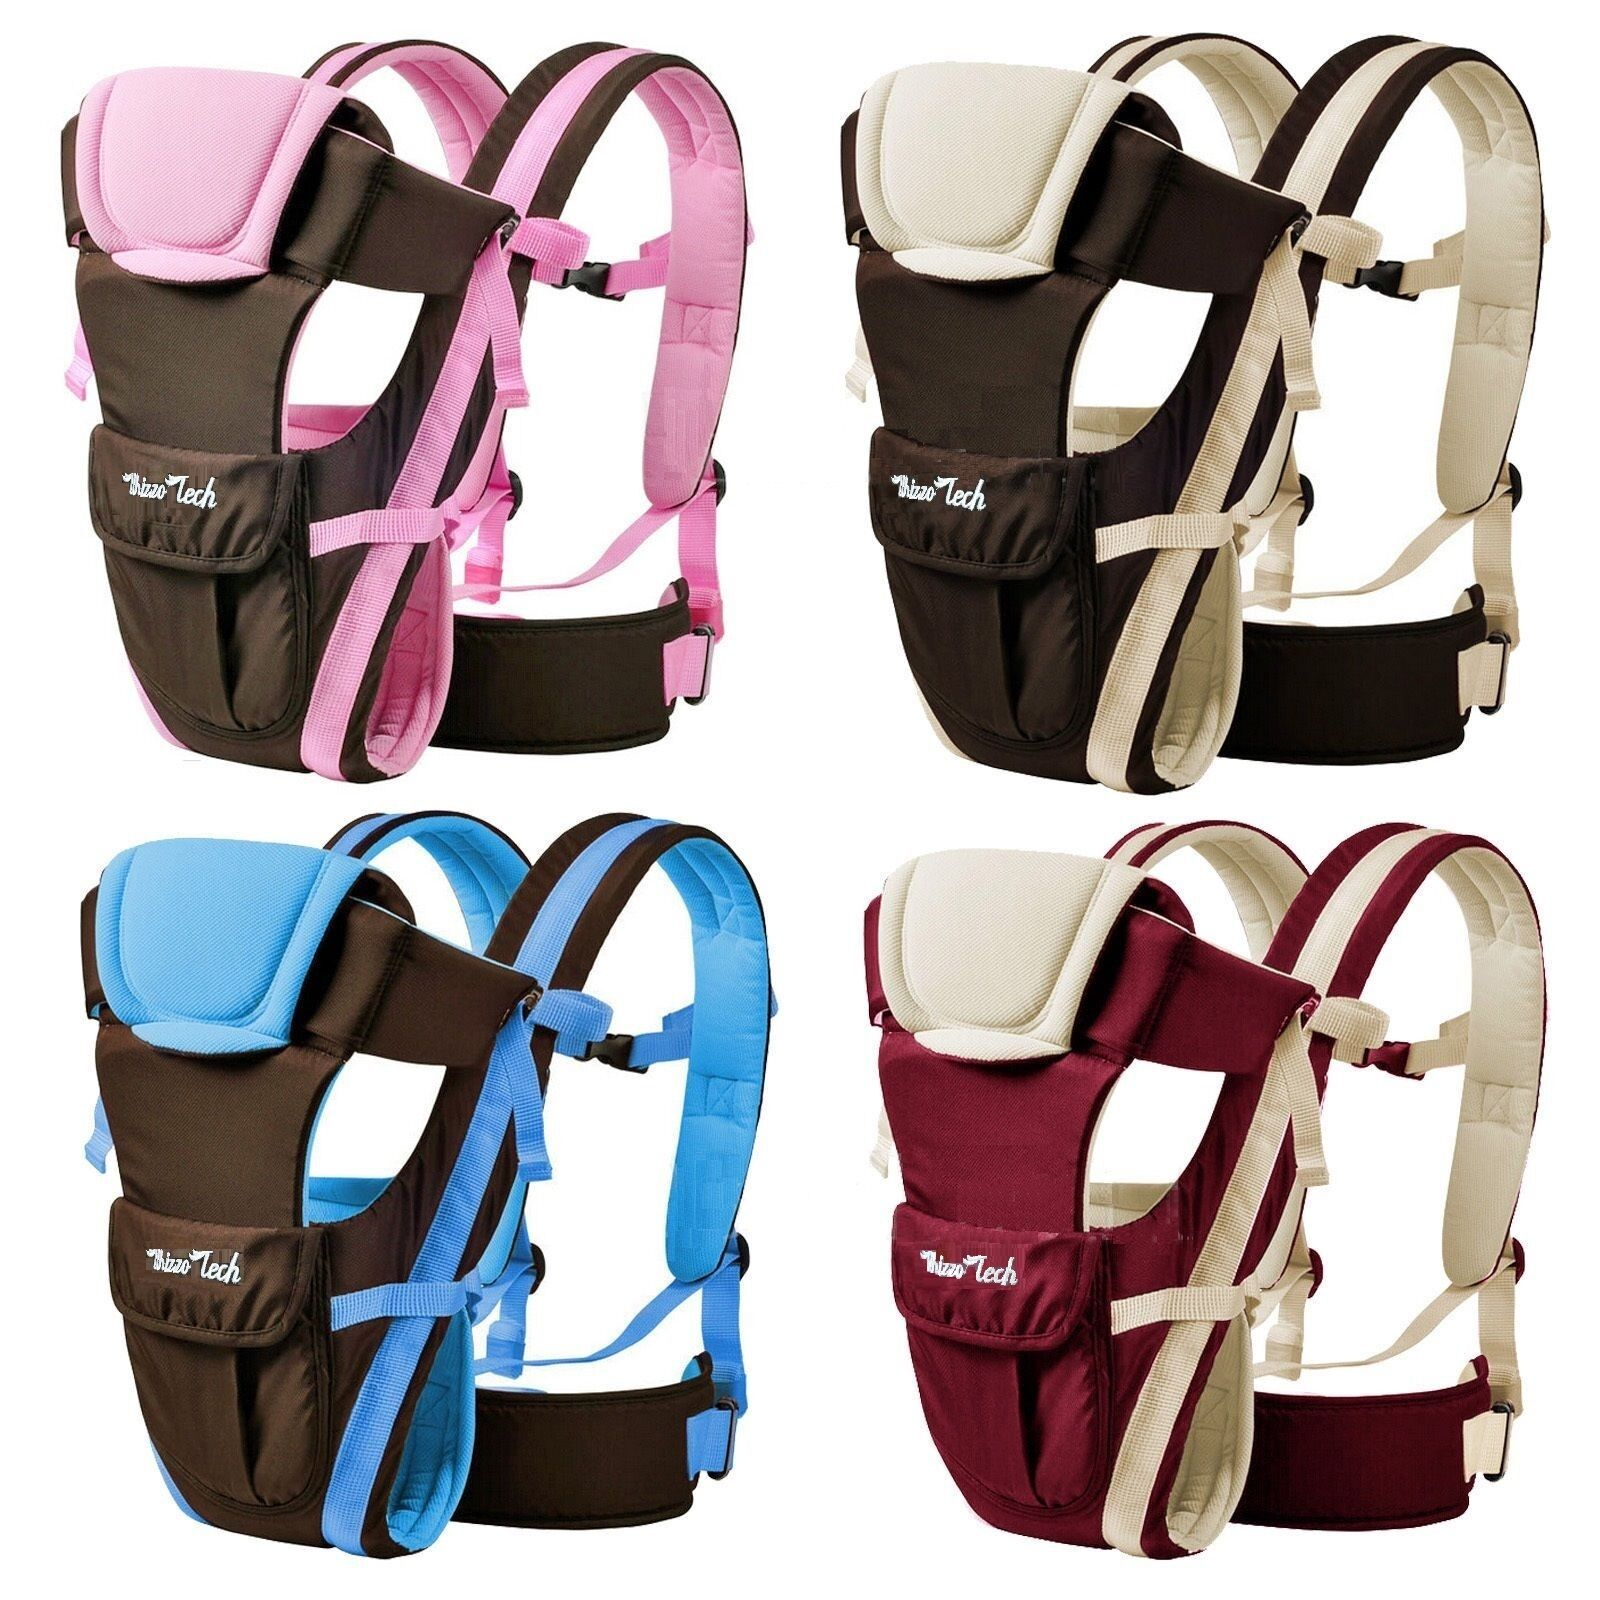 Adjustable Newborn Infant Baby Carrier Comfortable Wrap Rider Sling Backpack NEW